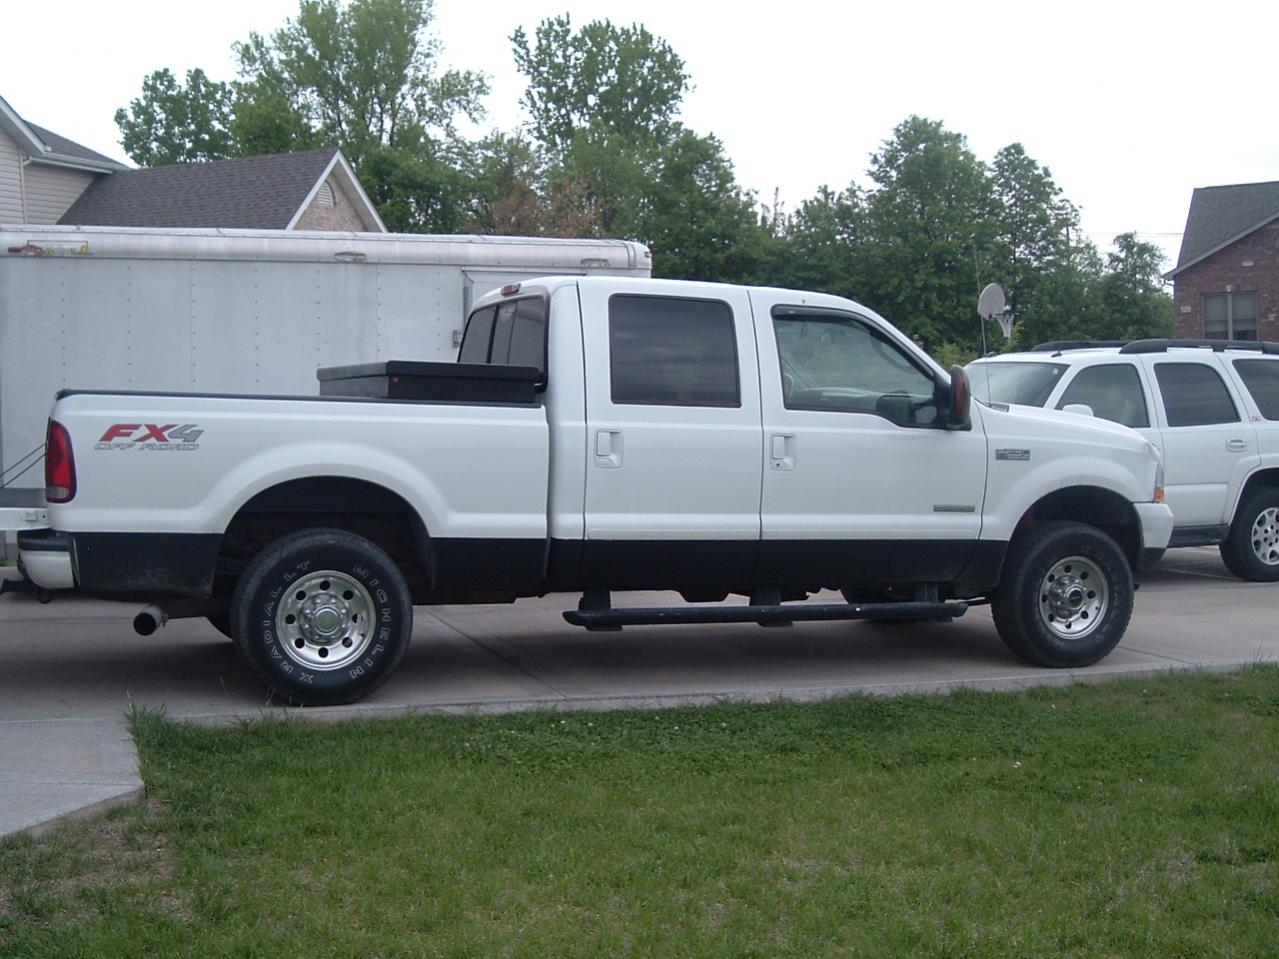 new trucks in the driveway vehicles contractor talk. Black Bedroom Furniture Sets. Home Design Ideas